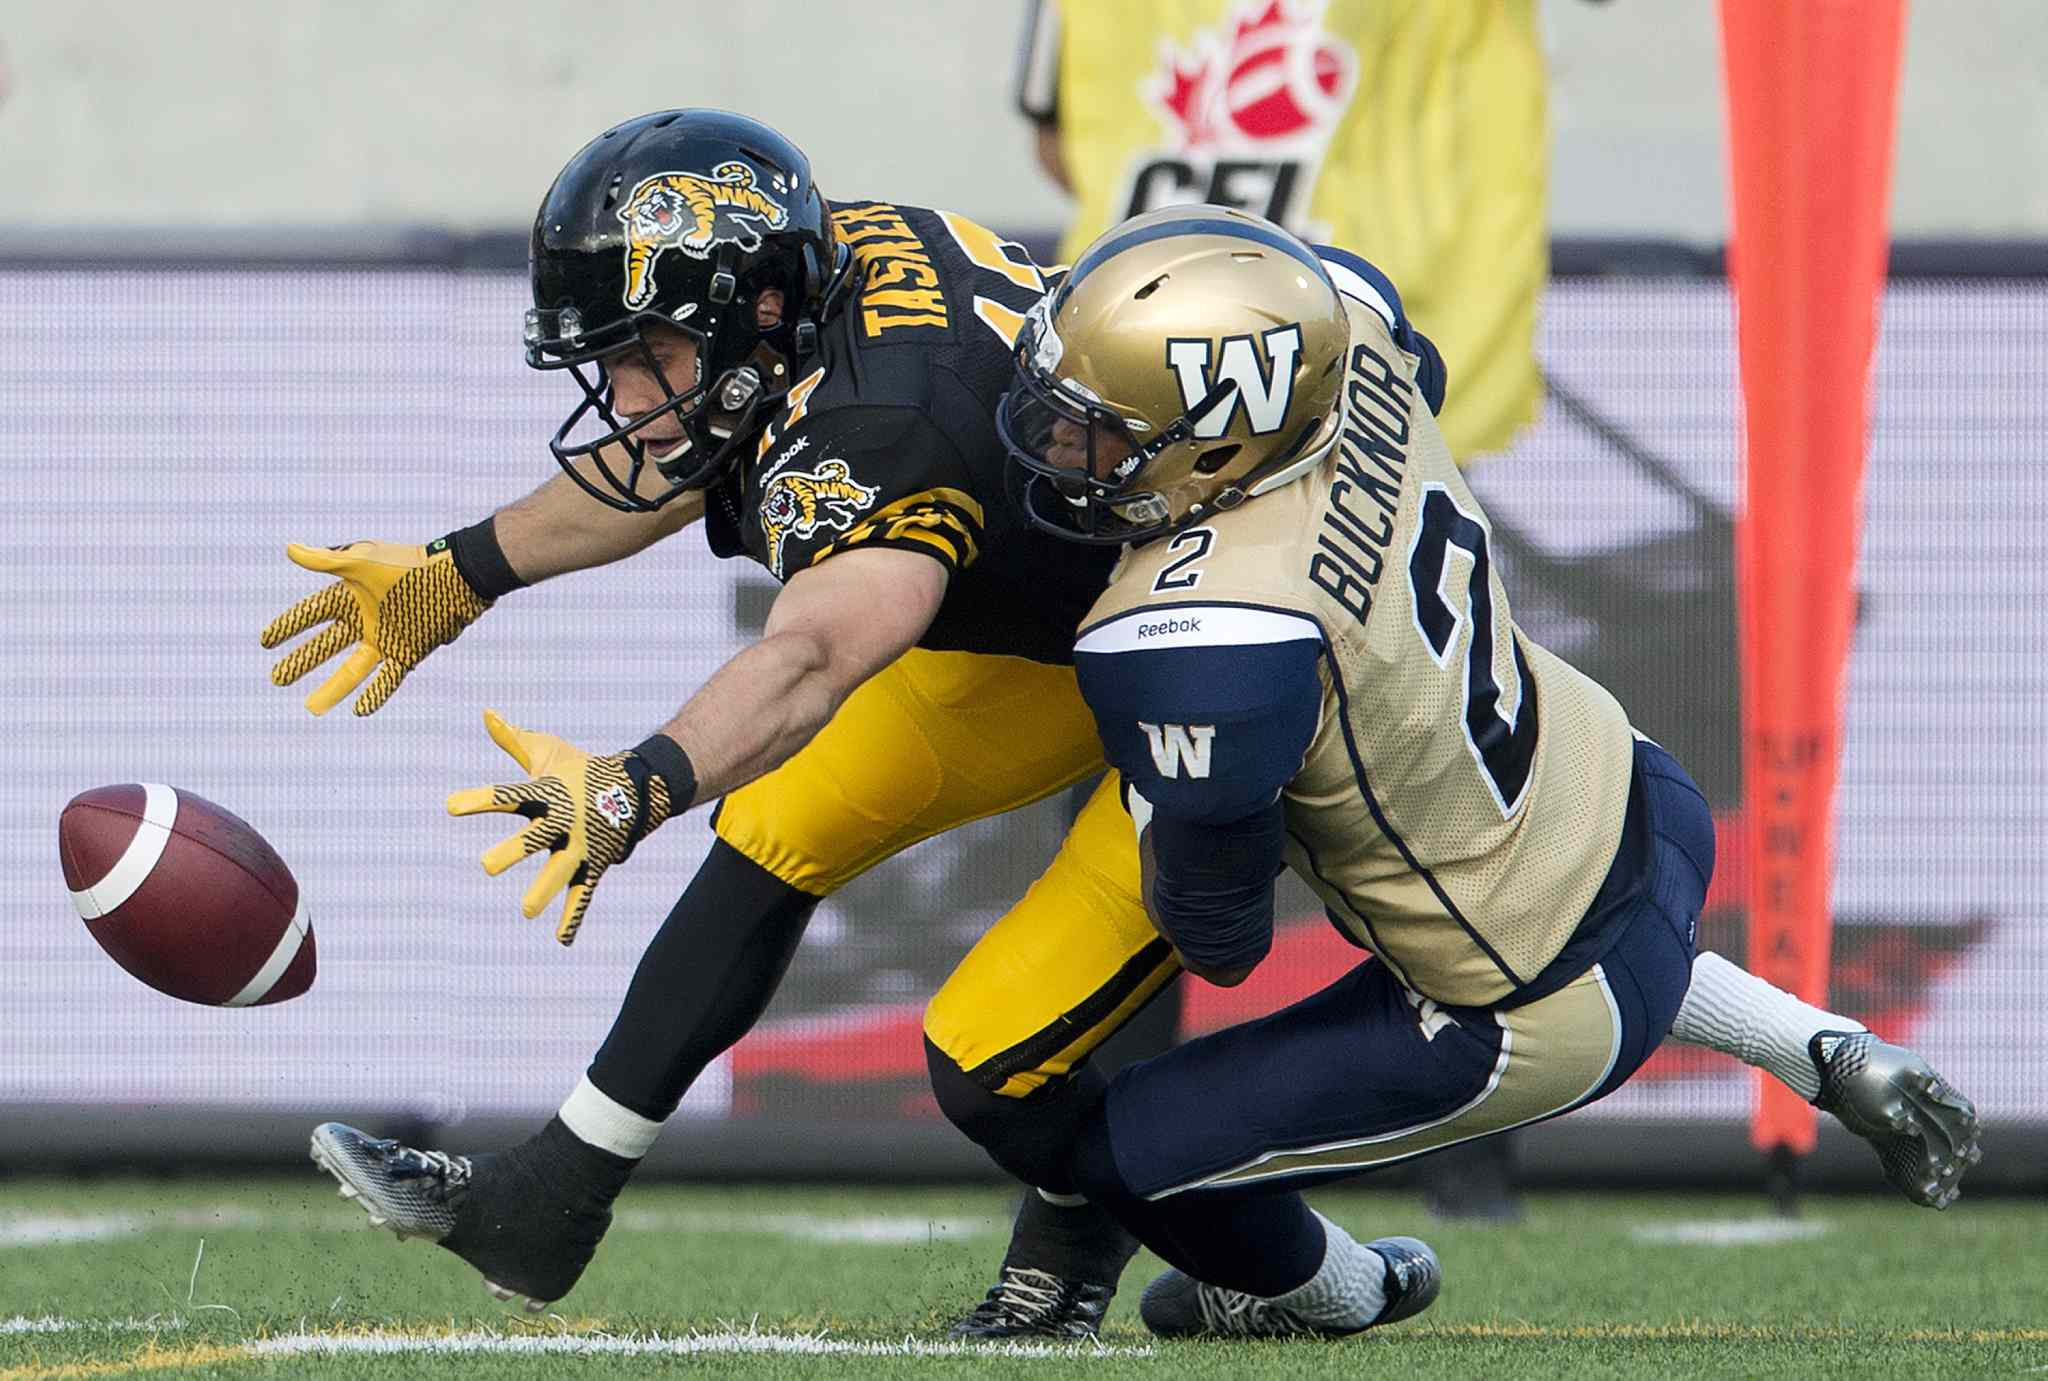 Hamilton Tiger-Cats' receiver Luke Tasker, left, loses the ball but recovers it past Winnipeg Blue Bombers' defensive back Matt Bucknor, right, during the first half of Thursday's game.